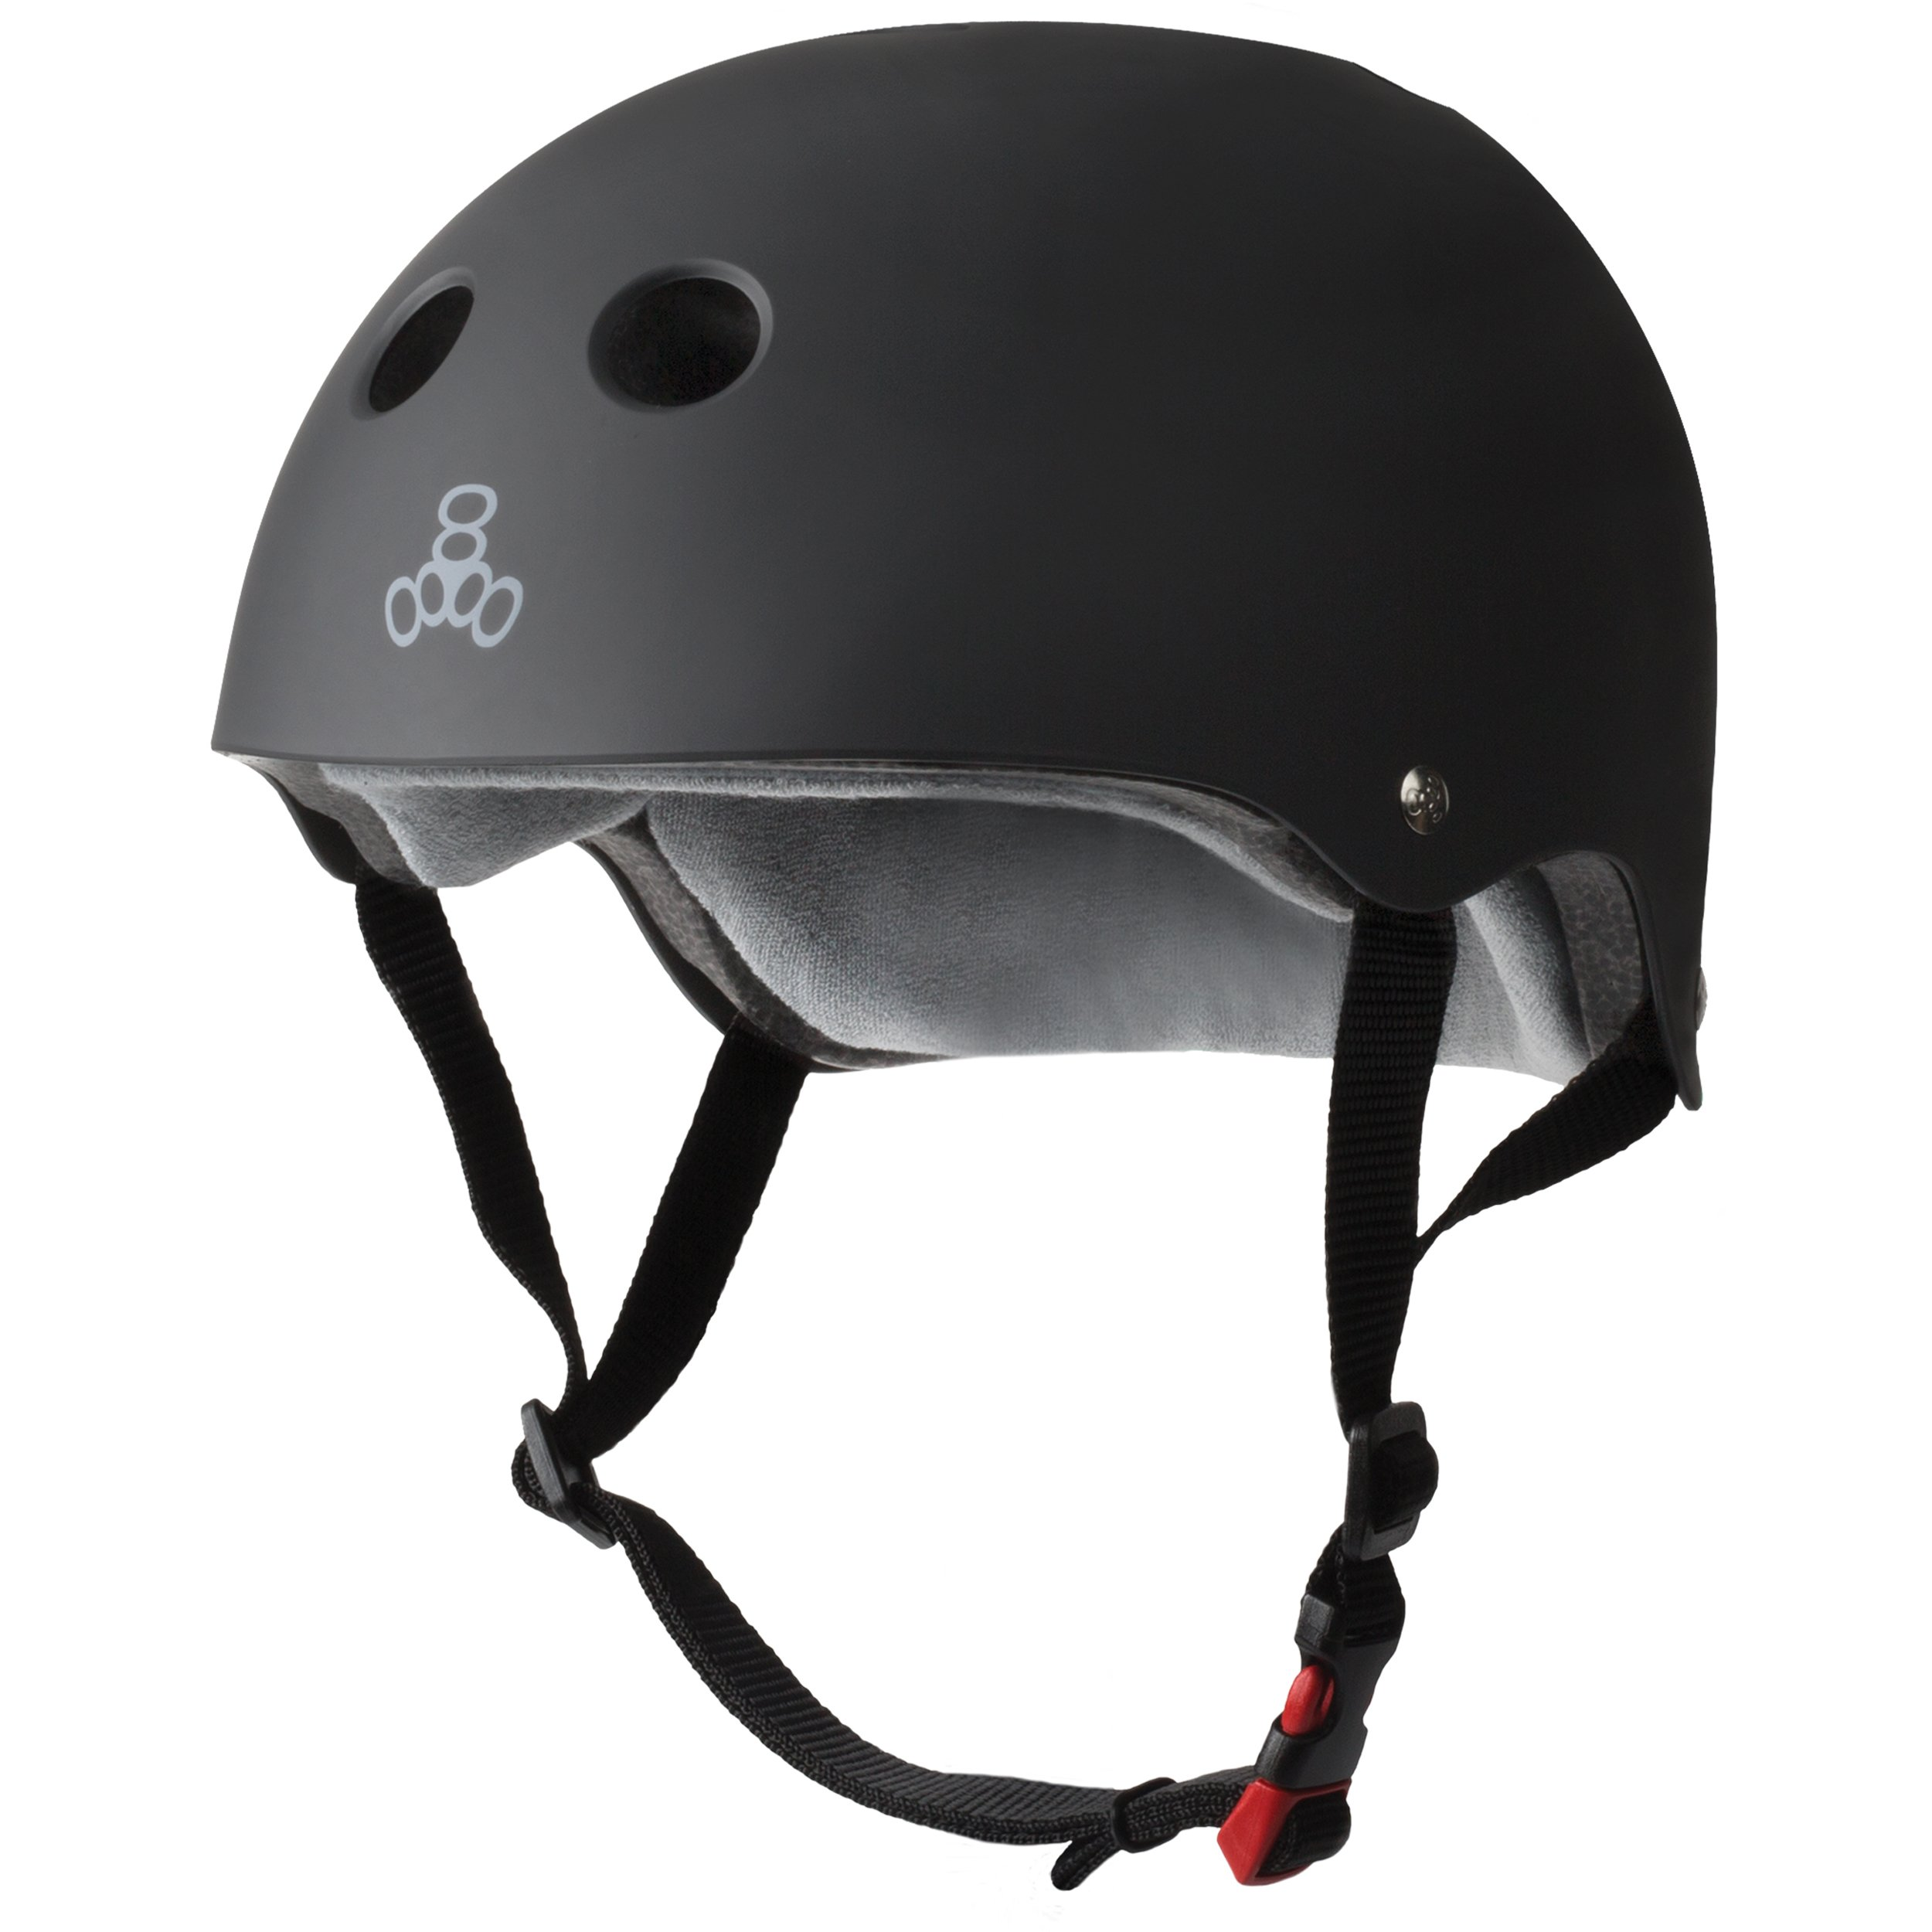 Triple 8 THE Certified Sweatsaver Helmet for Skateboarding, BMX, Roller Skating and Action Sports, Black Rubber, S/M